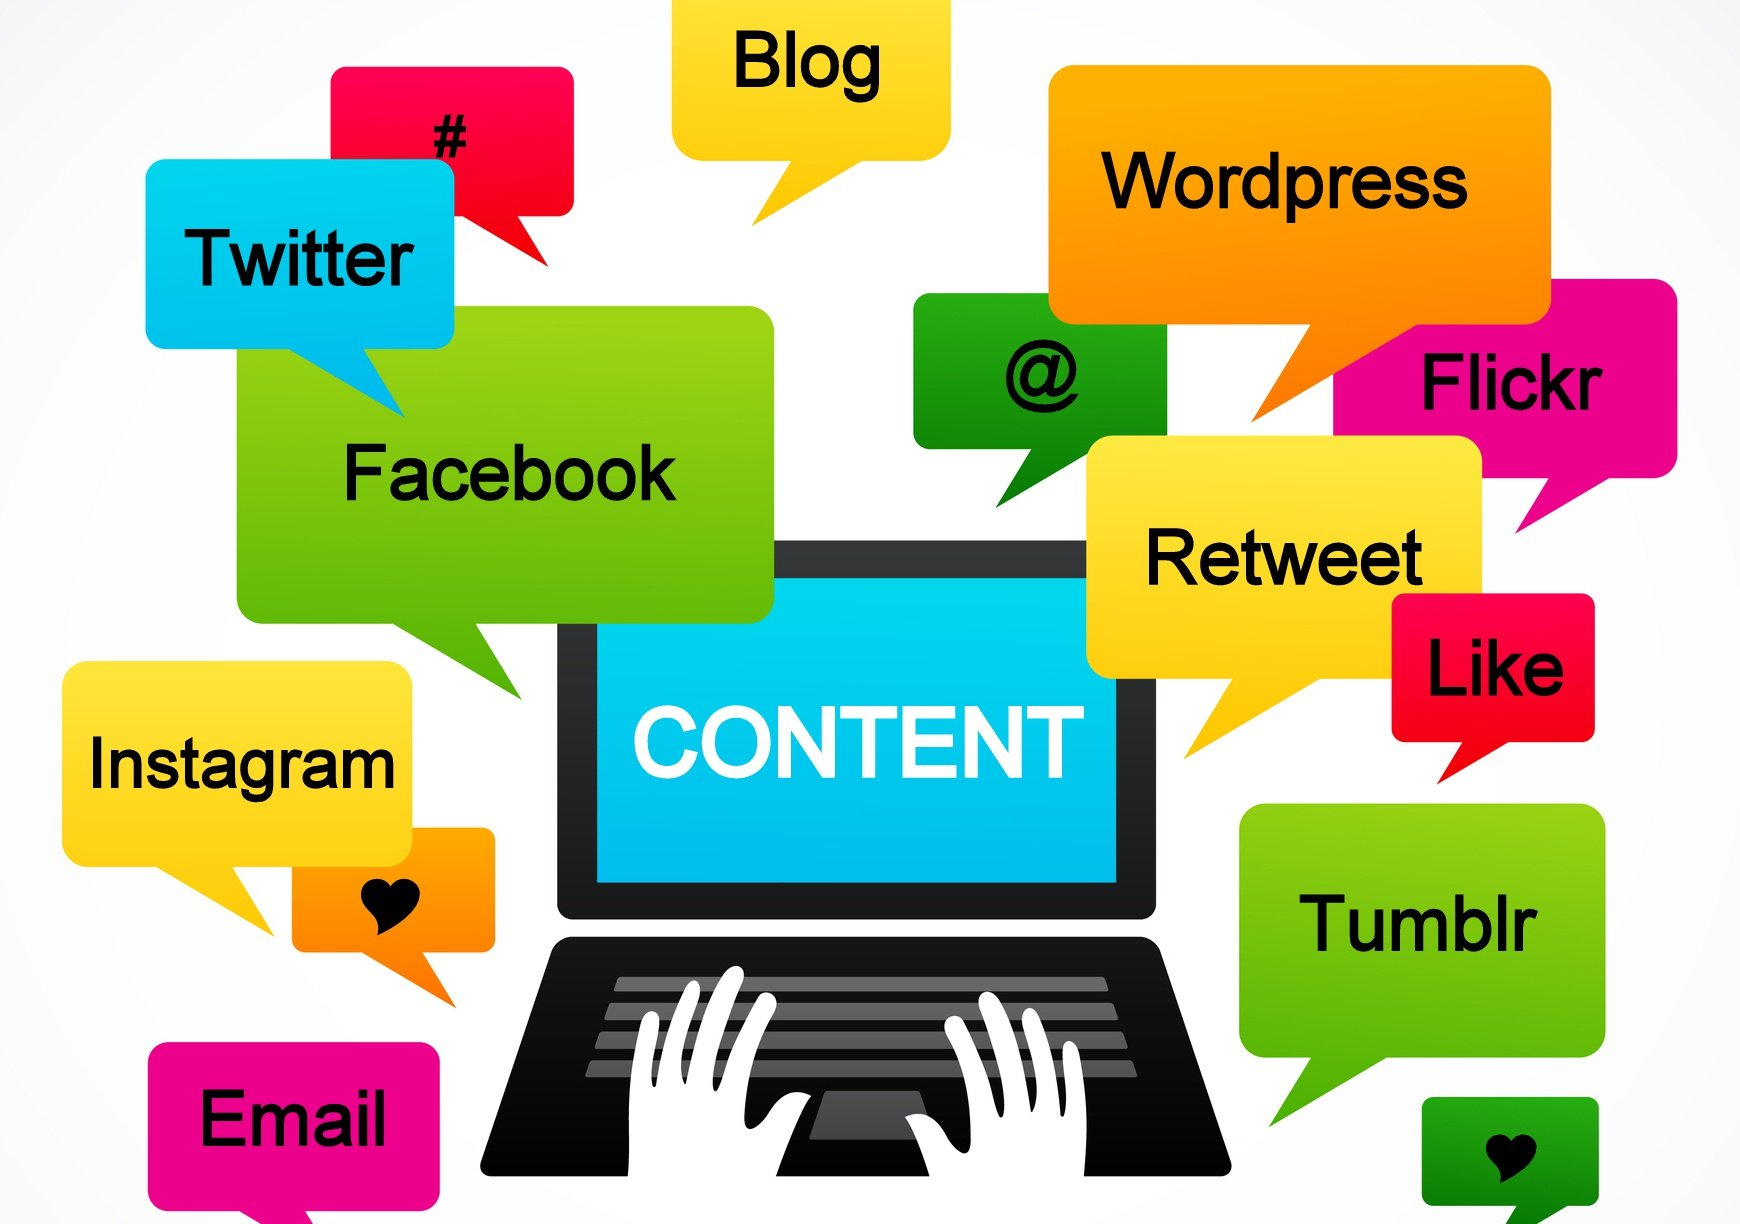 5 Types of Content Get Highly Shared